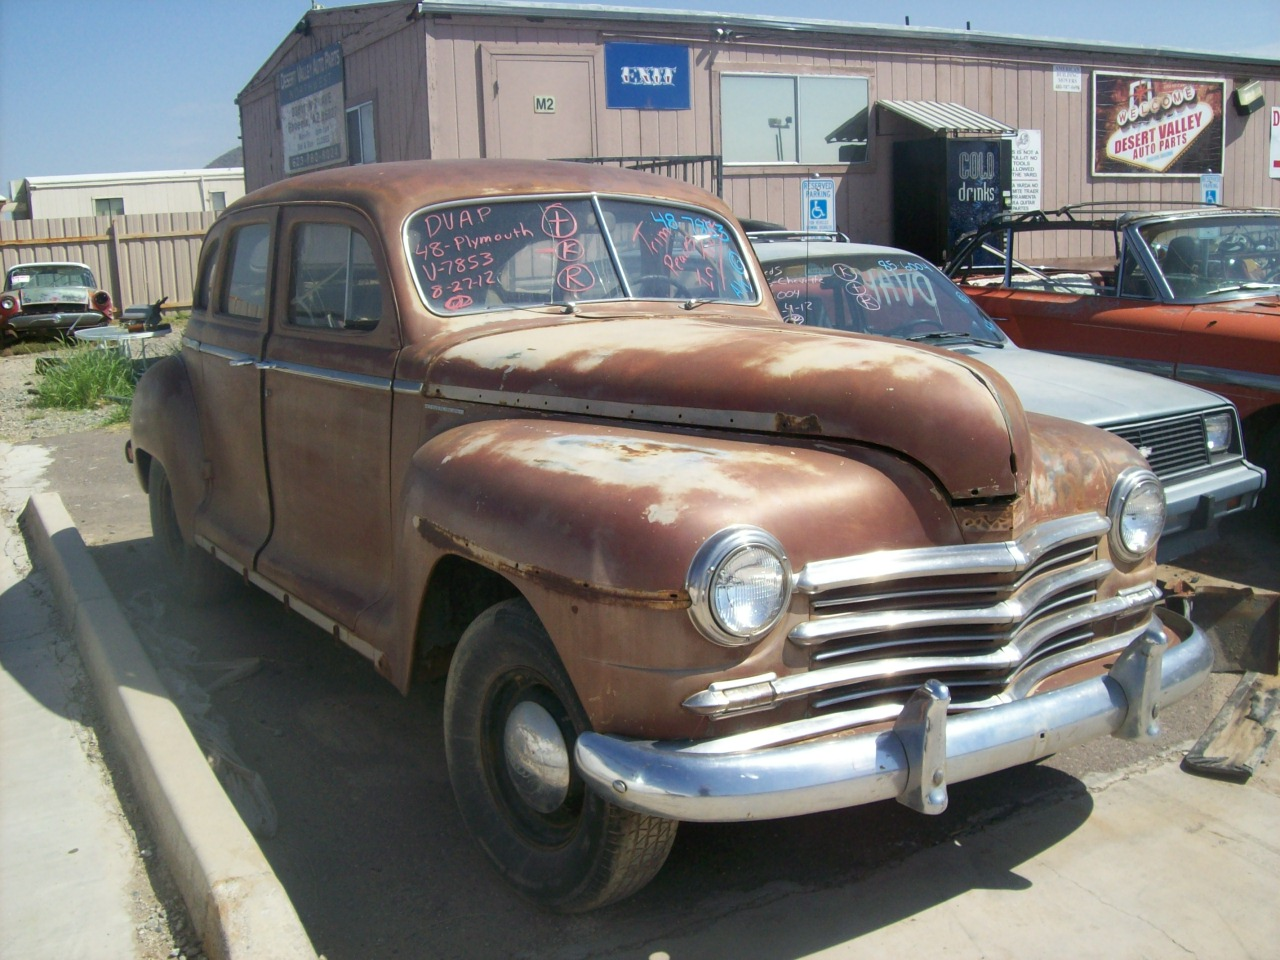 Front Web likewise  likewise Galaxie further Oldsmobile Deluxe in addition Cadillac Deville Ameriky American Cars For Sale X X. on 1950 plymouth deluxe 4 door